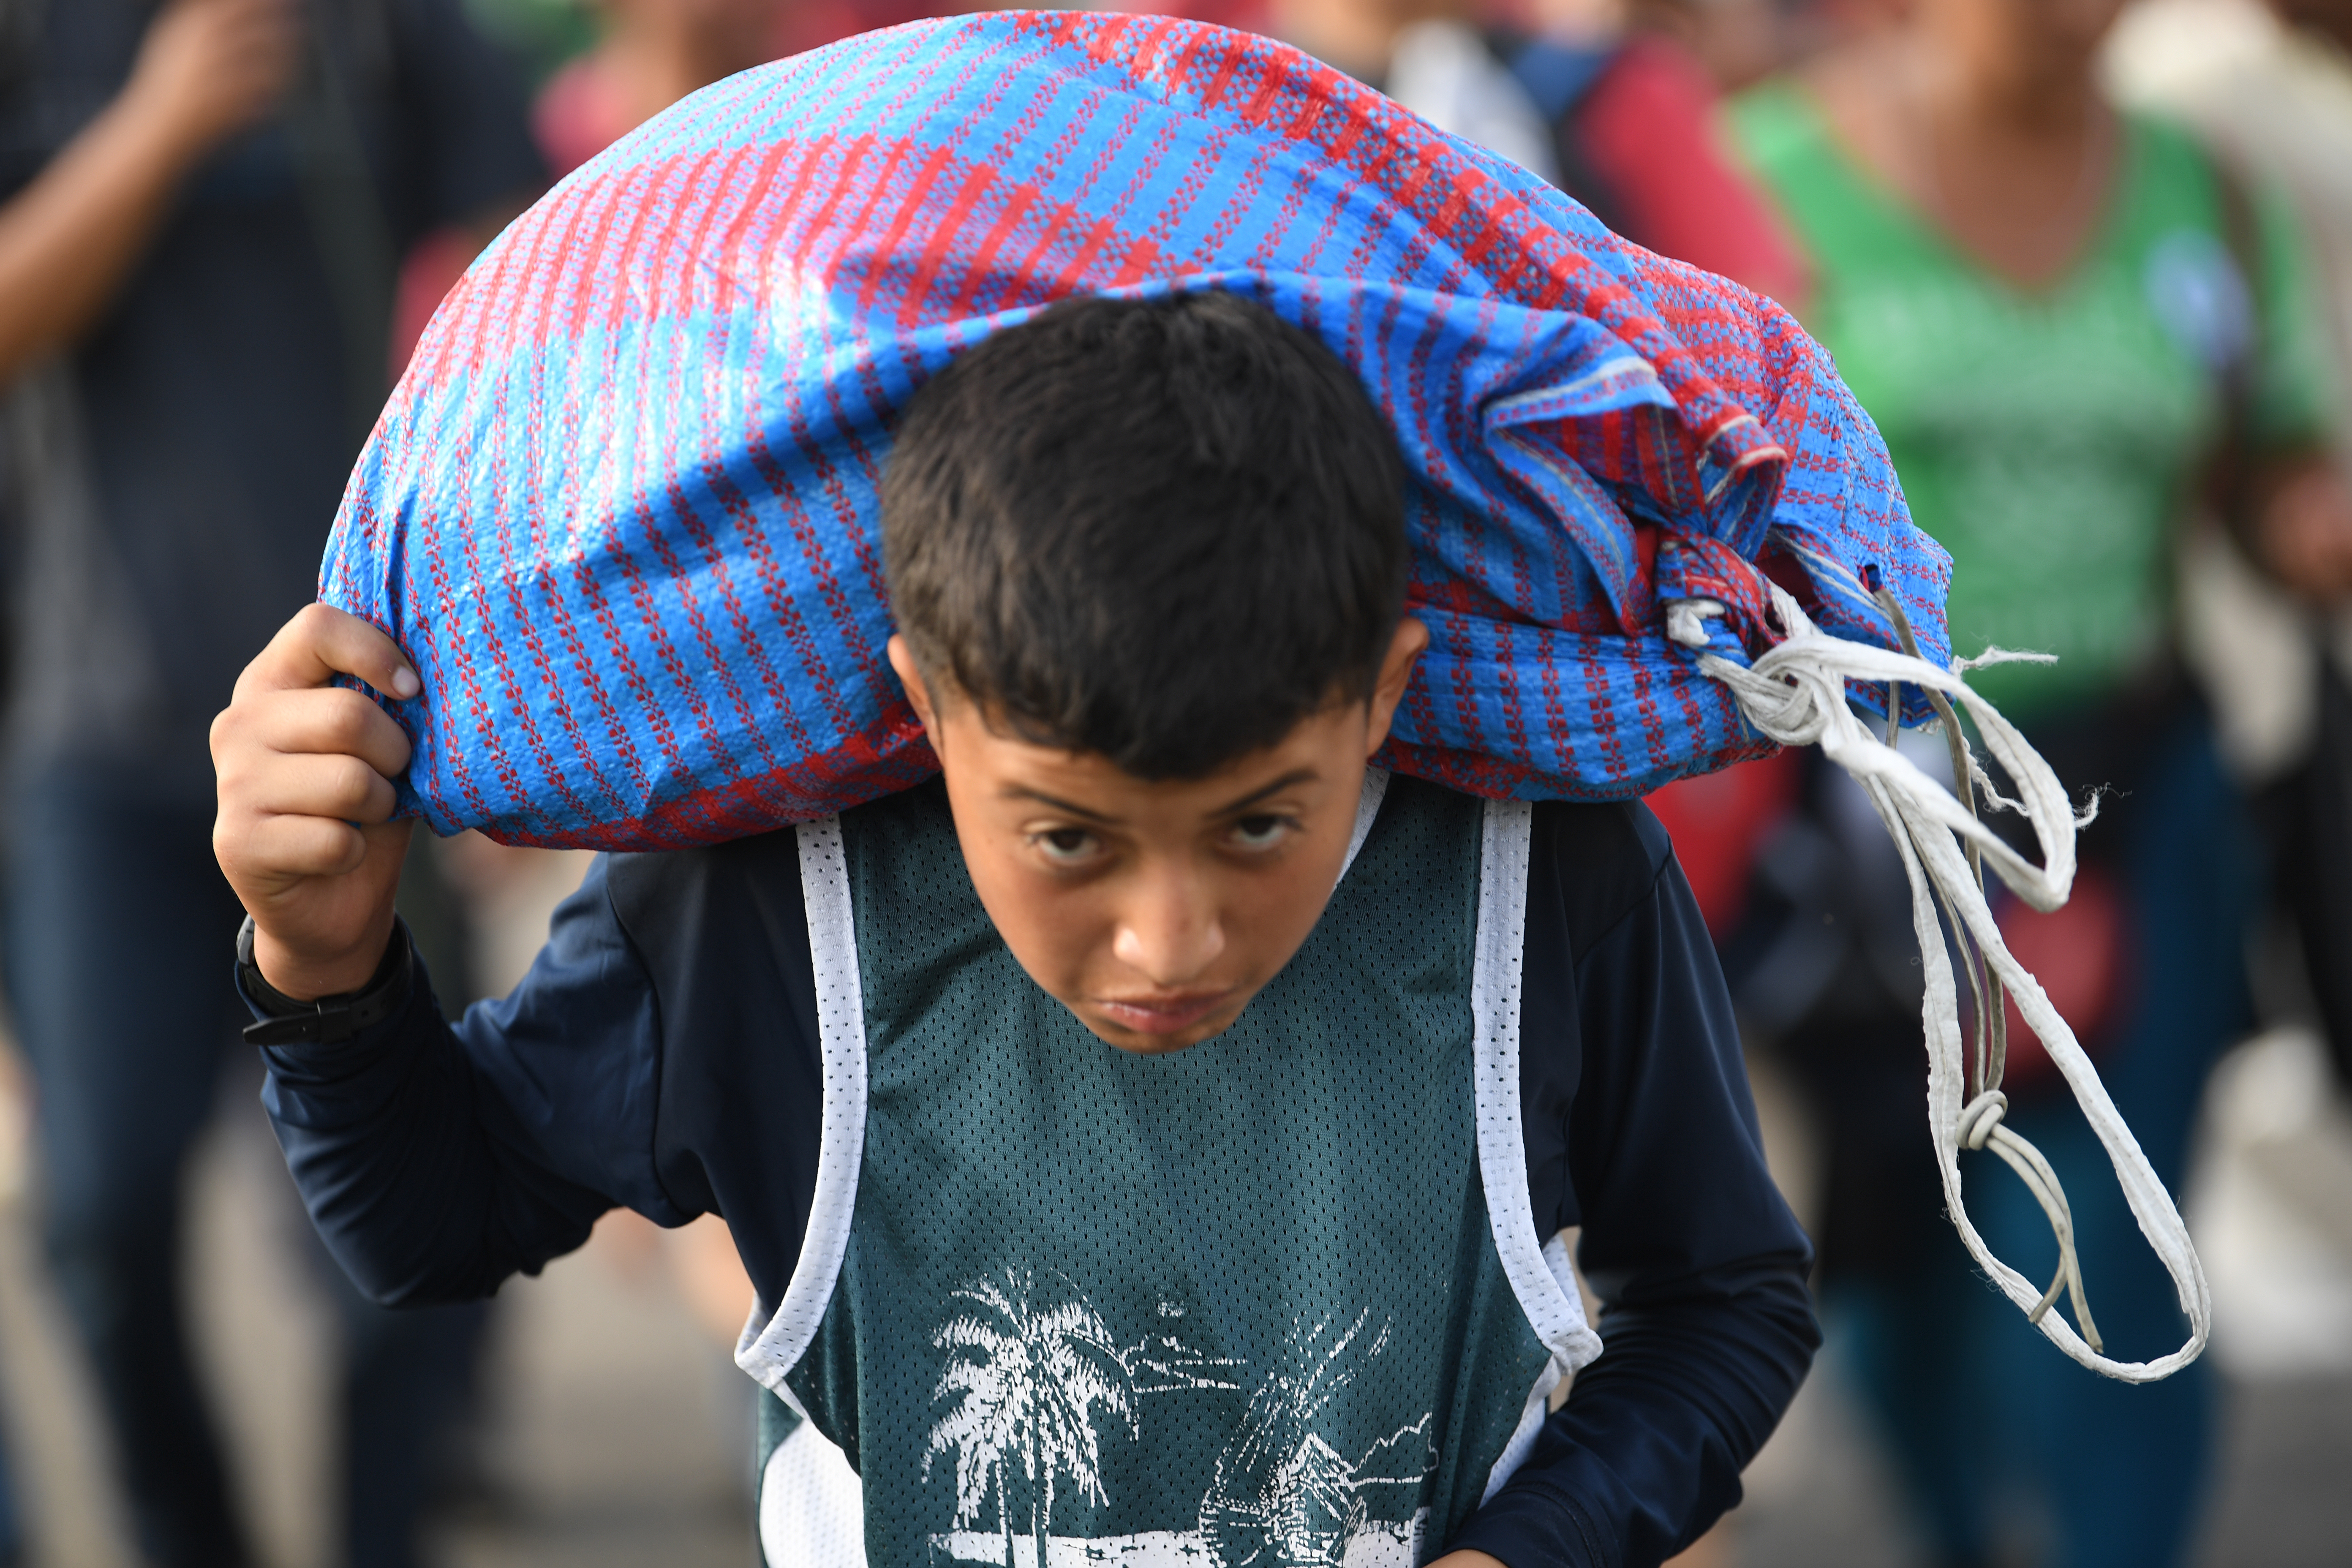 A Honduran migrant boy carries a bag as he takes part in a caravan heading to the US on the road linking Ciudad Hidalgo and Tapachula, Chiapas state, Mexico, Oct. 21, 2018.